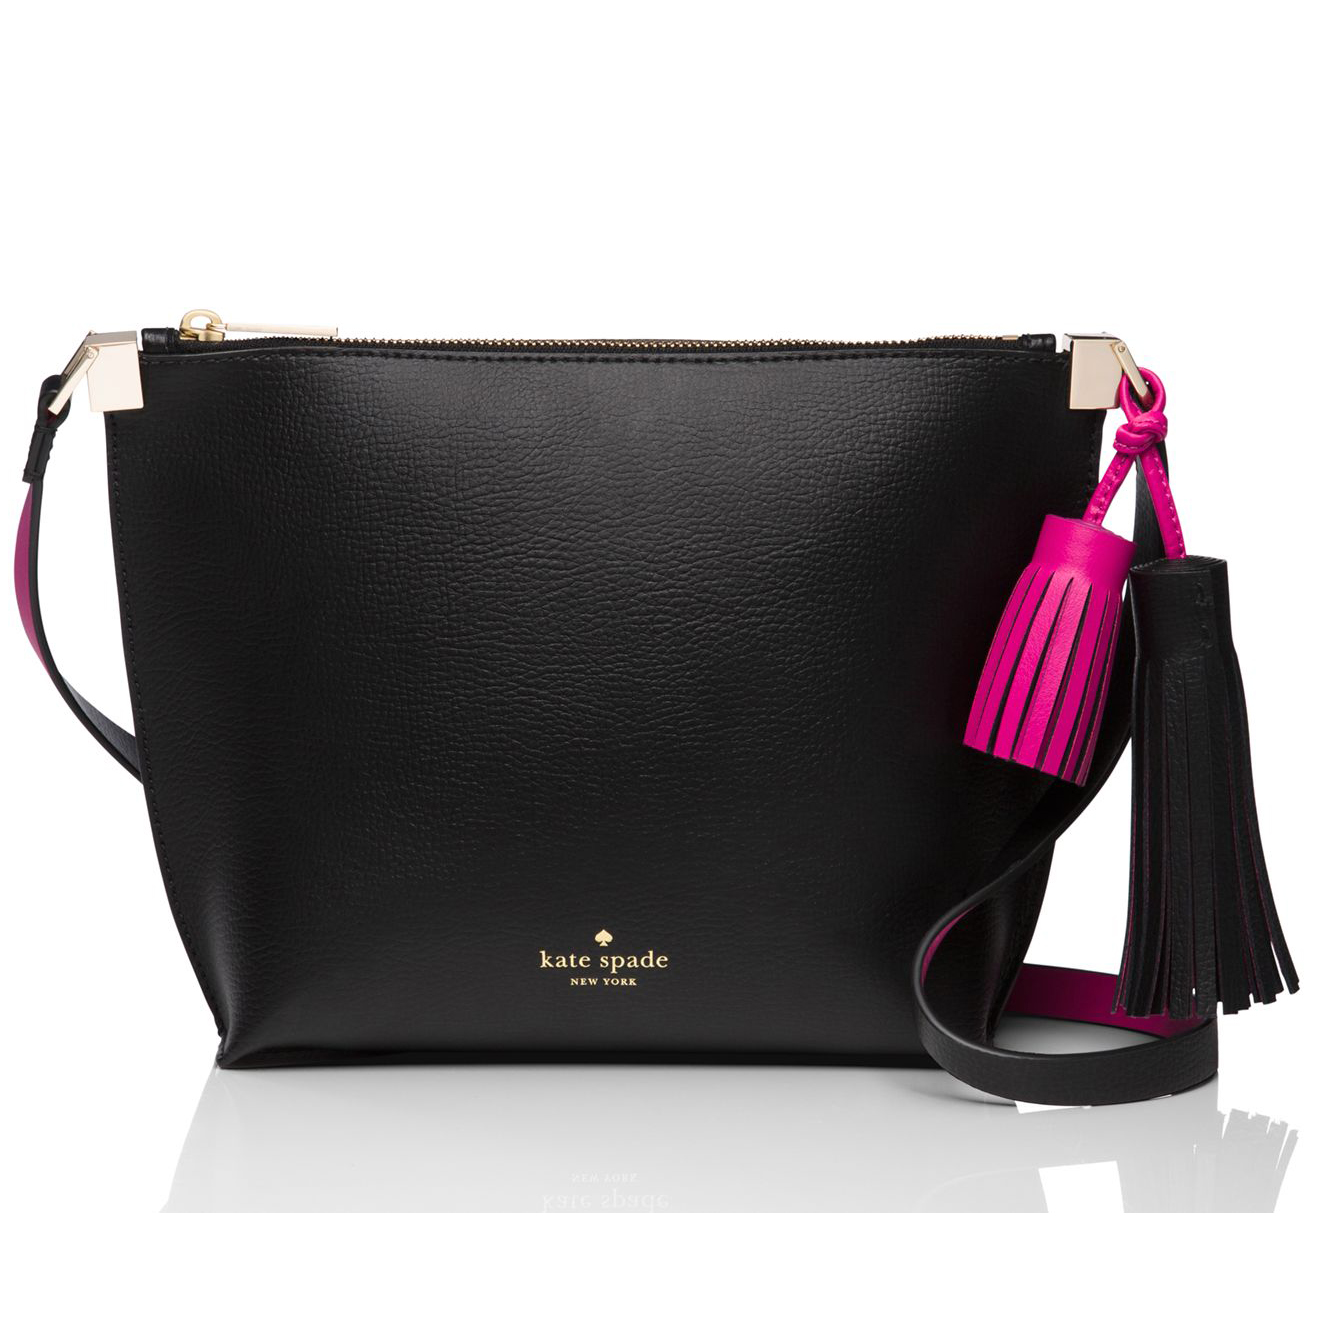 Kate Spade Crossbody Bag In Gift Box Foster Court Pepper Crossbody Shoulder Bag Black / Sweetheart Pink # WKRU3831